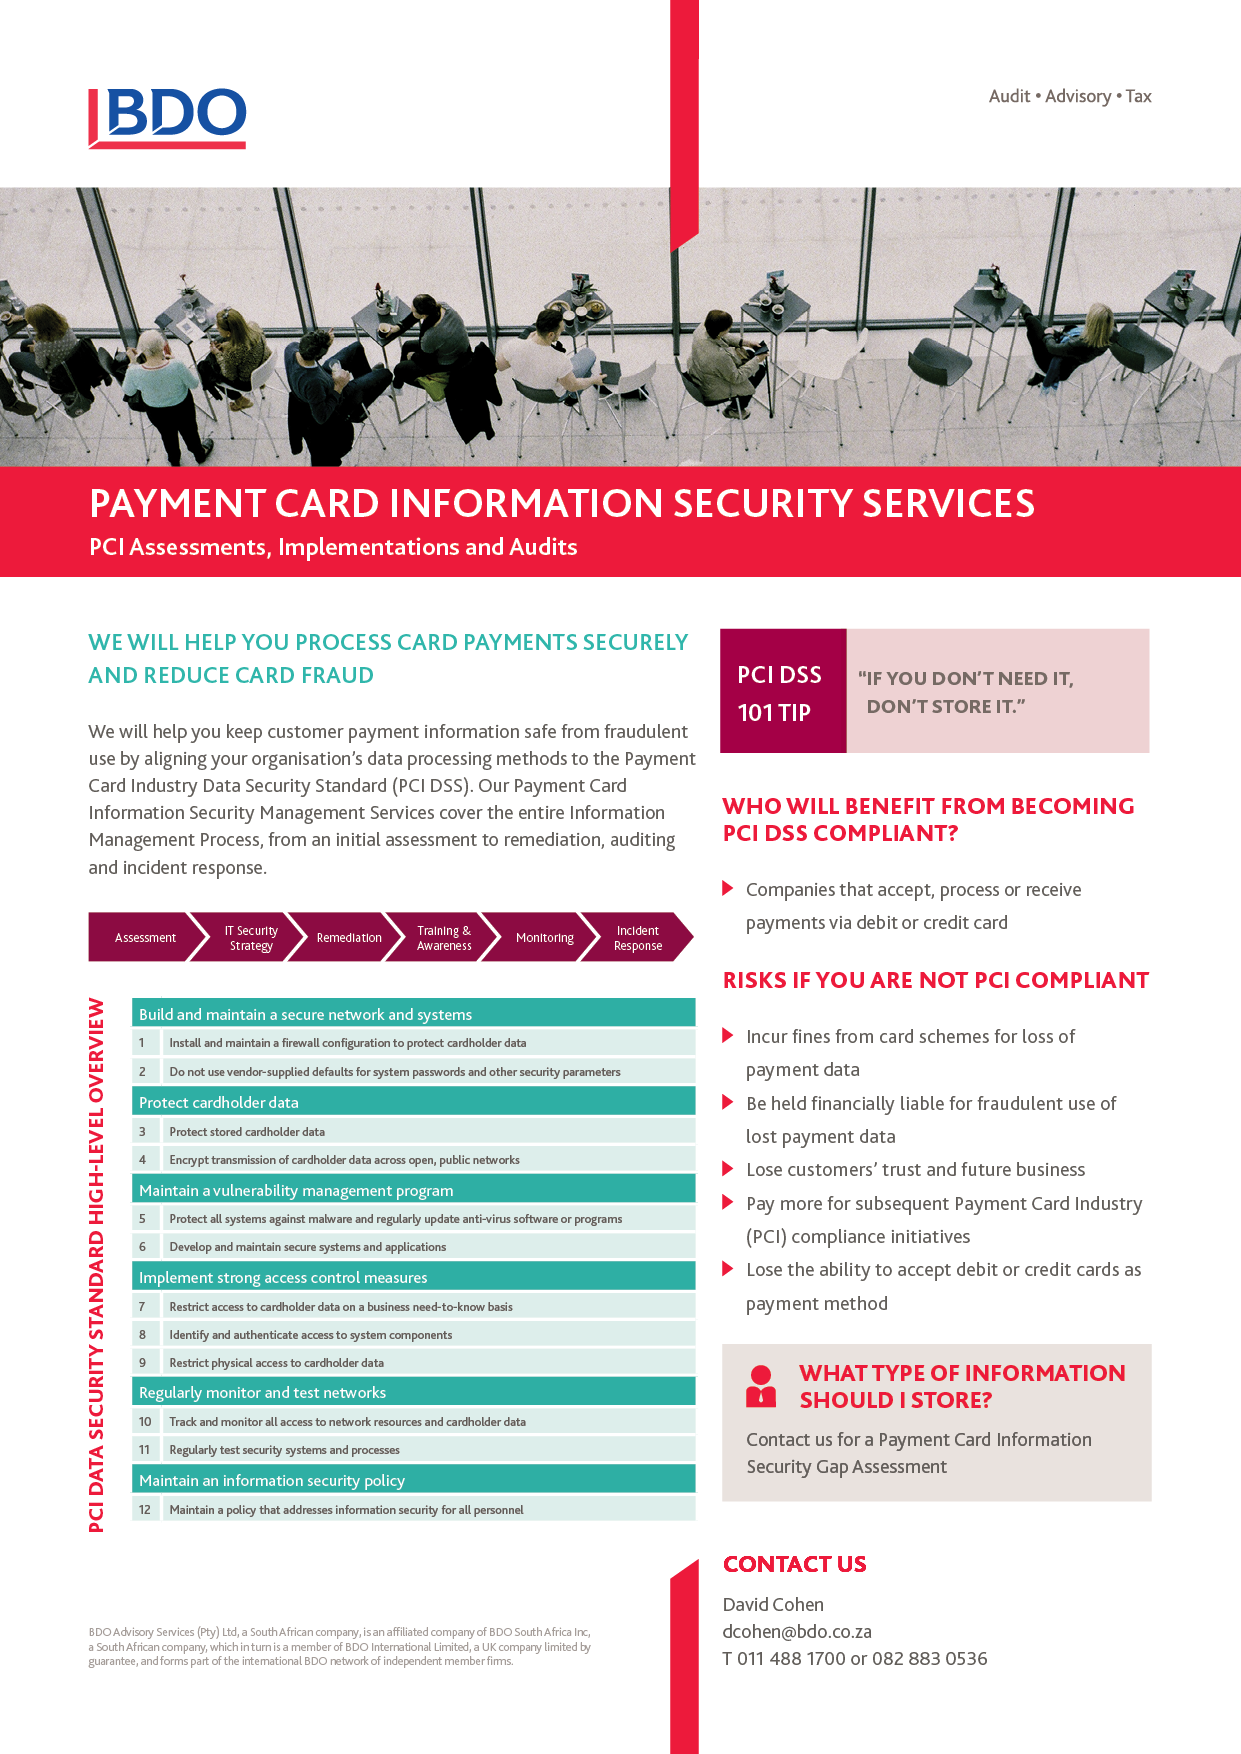 Payment Card Information Security Services Brochure Visit Our